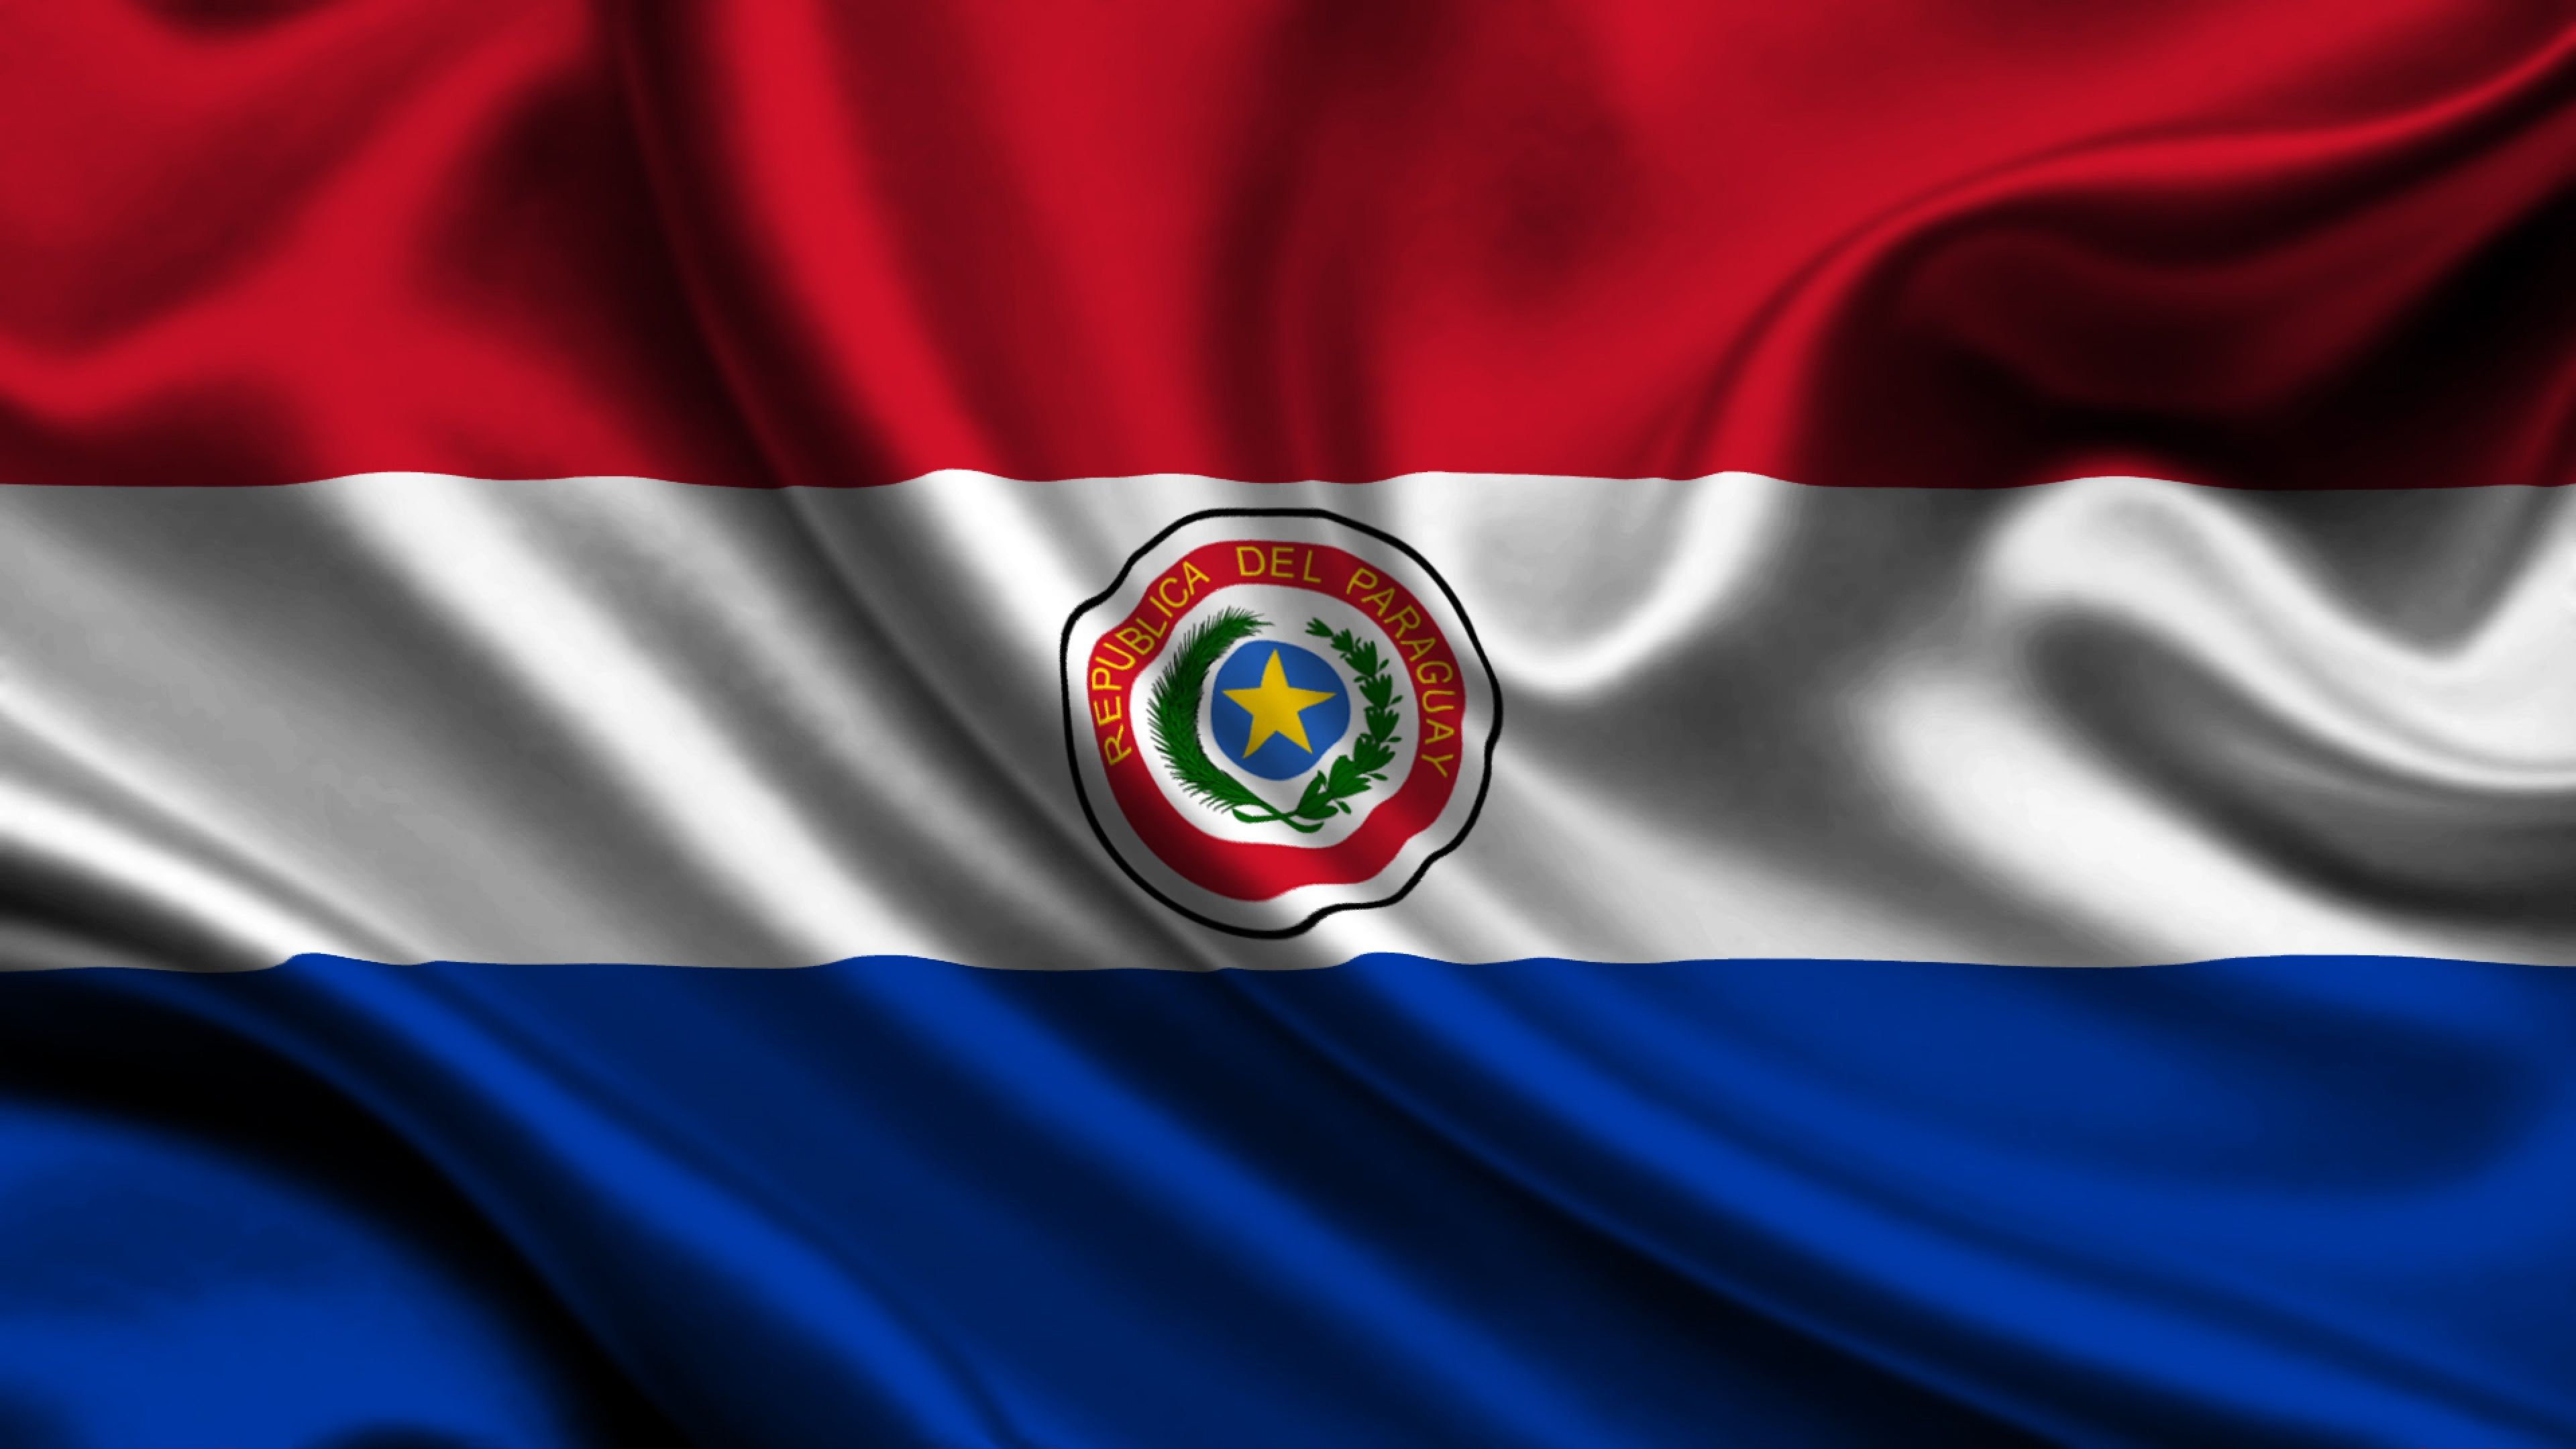 Presenting the beautiful paraguay flag paraguay pinterest presenting the beautiful paraguay flag buycottarizona